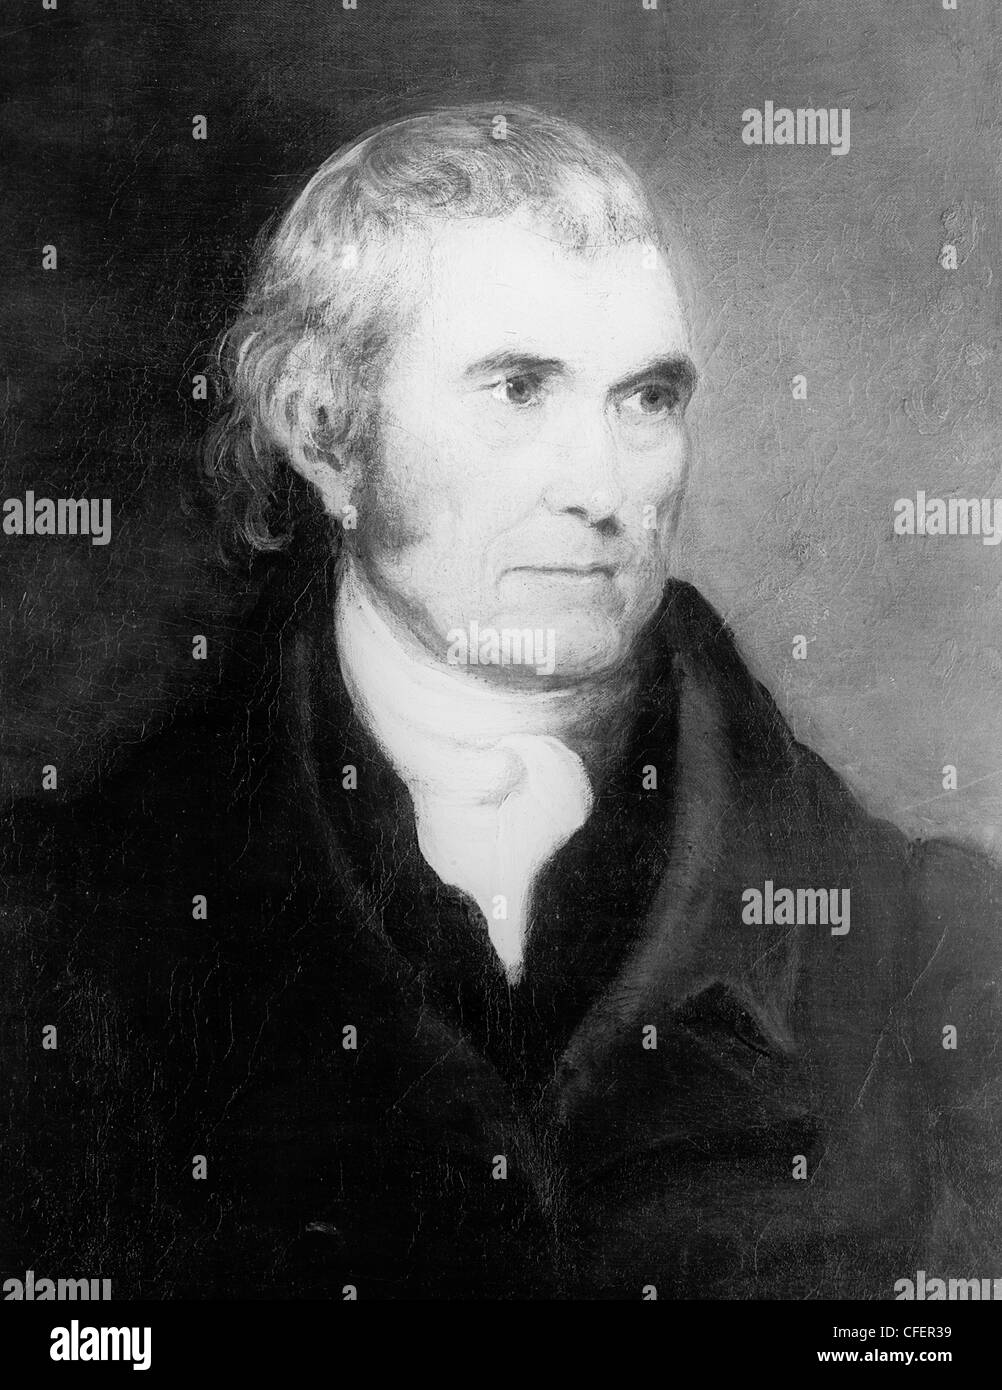 Vintage portrait painting of American statesman and judge John Marshall (1755 - 1835) - the fourth US Chief Justice Stock Photo